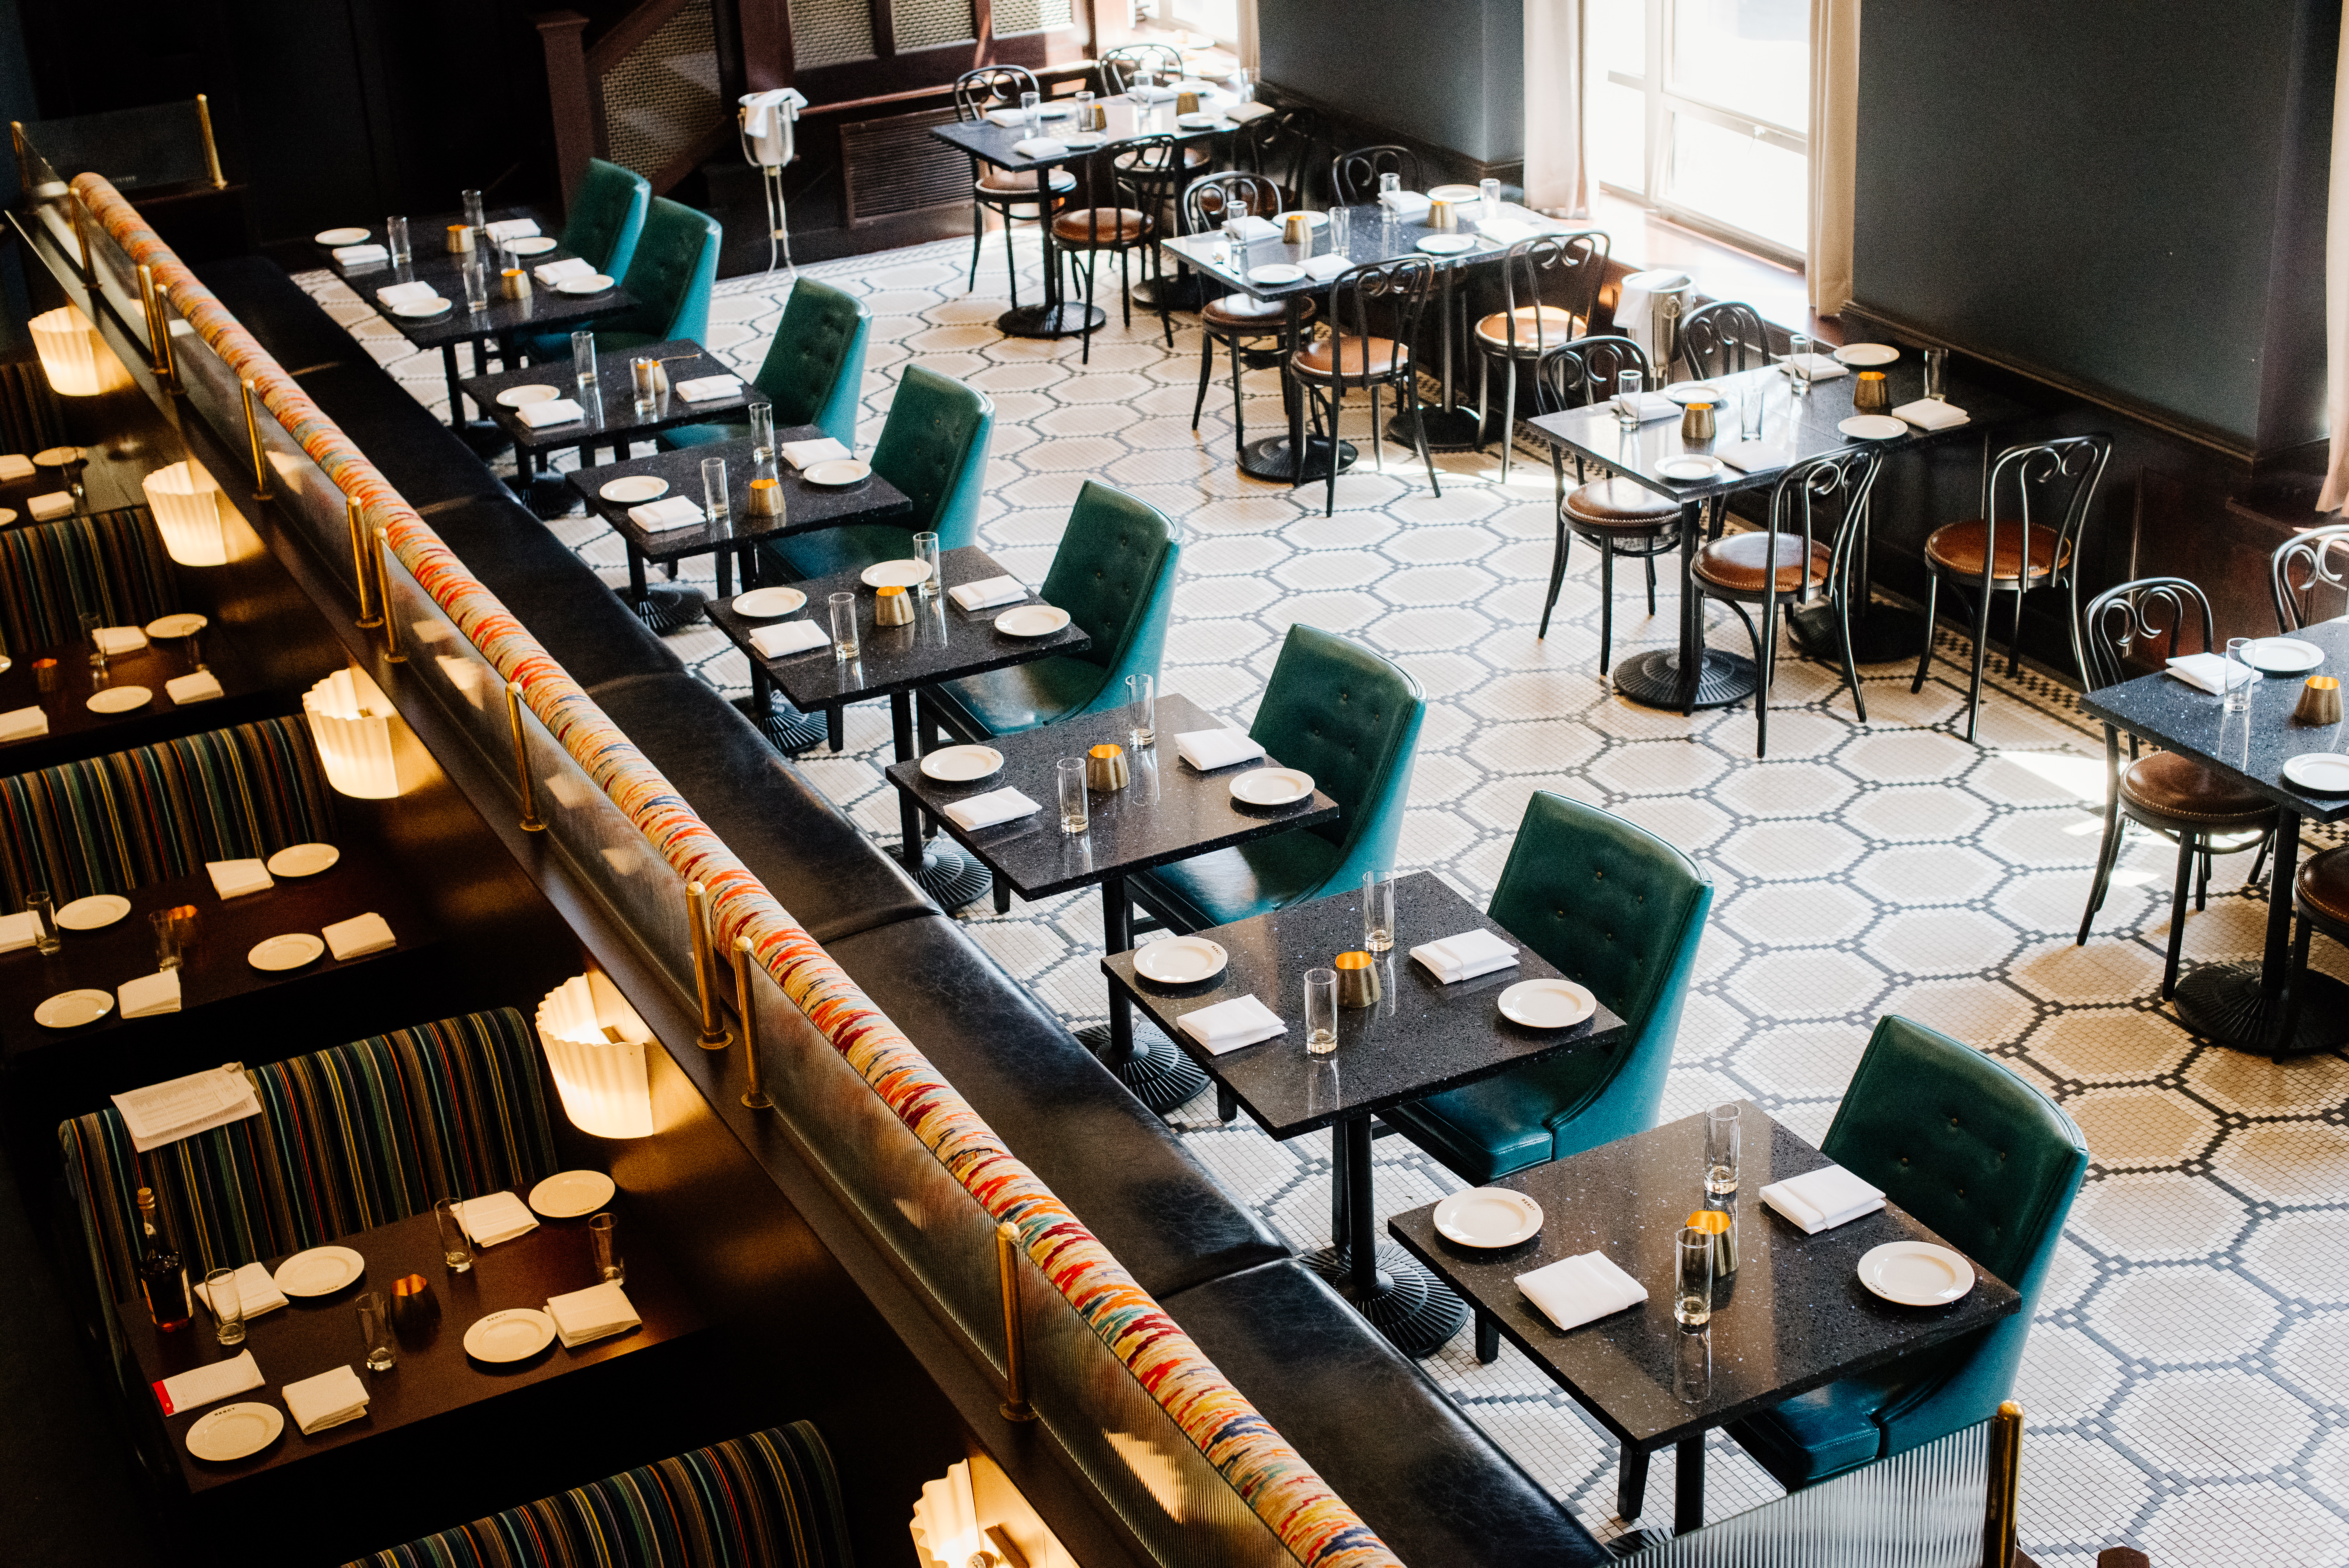 Newly opened The Bercy will offer its first Thanksgiving menu, featuring multiple dishes with French-inspired flair.